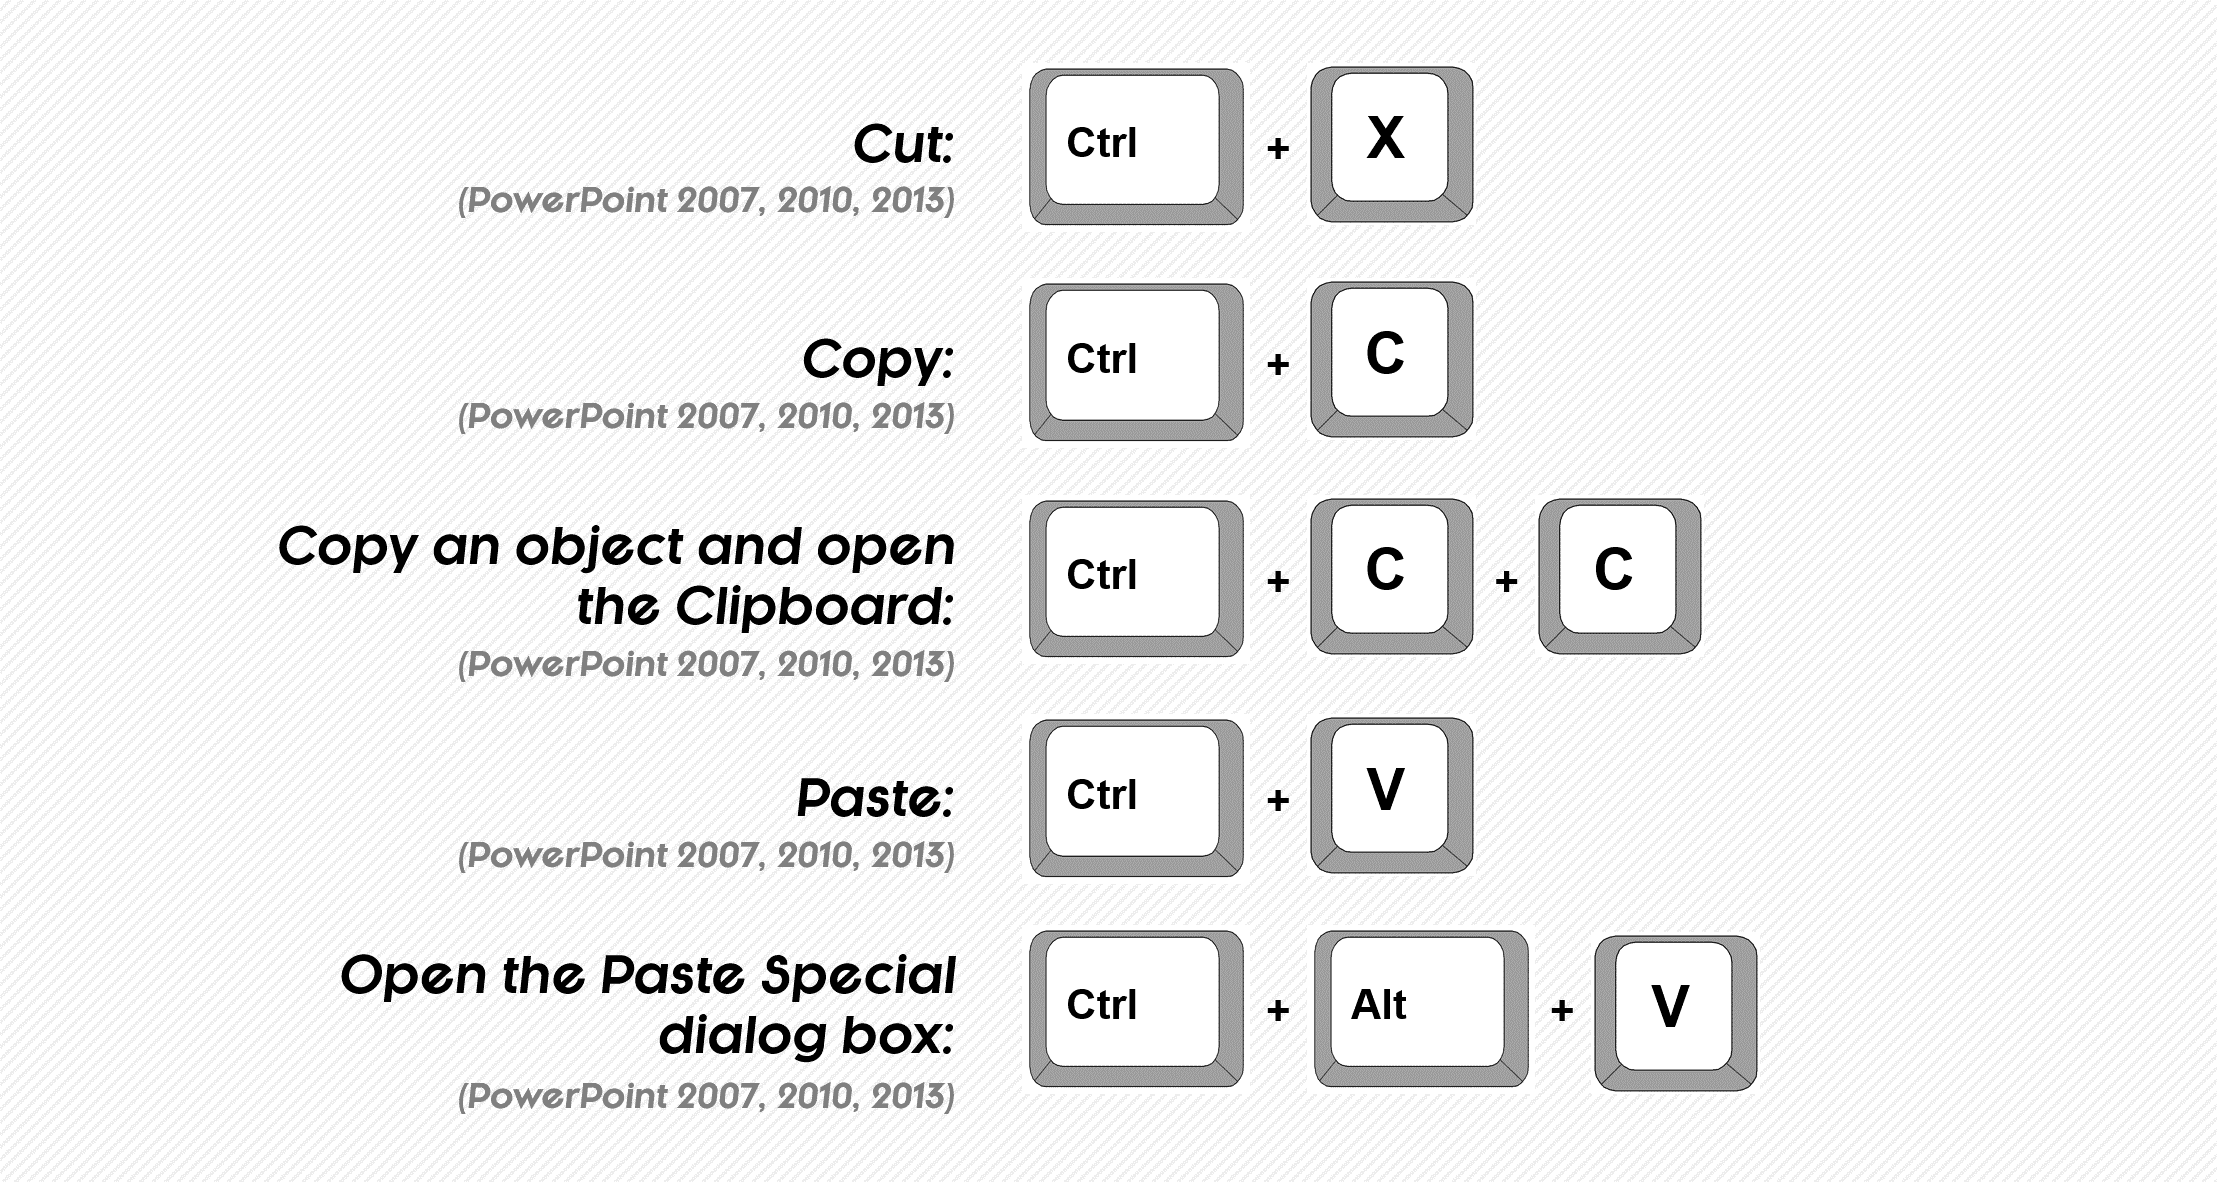 Cut, Copy, Clipboard, Paste and Paste Special